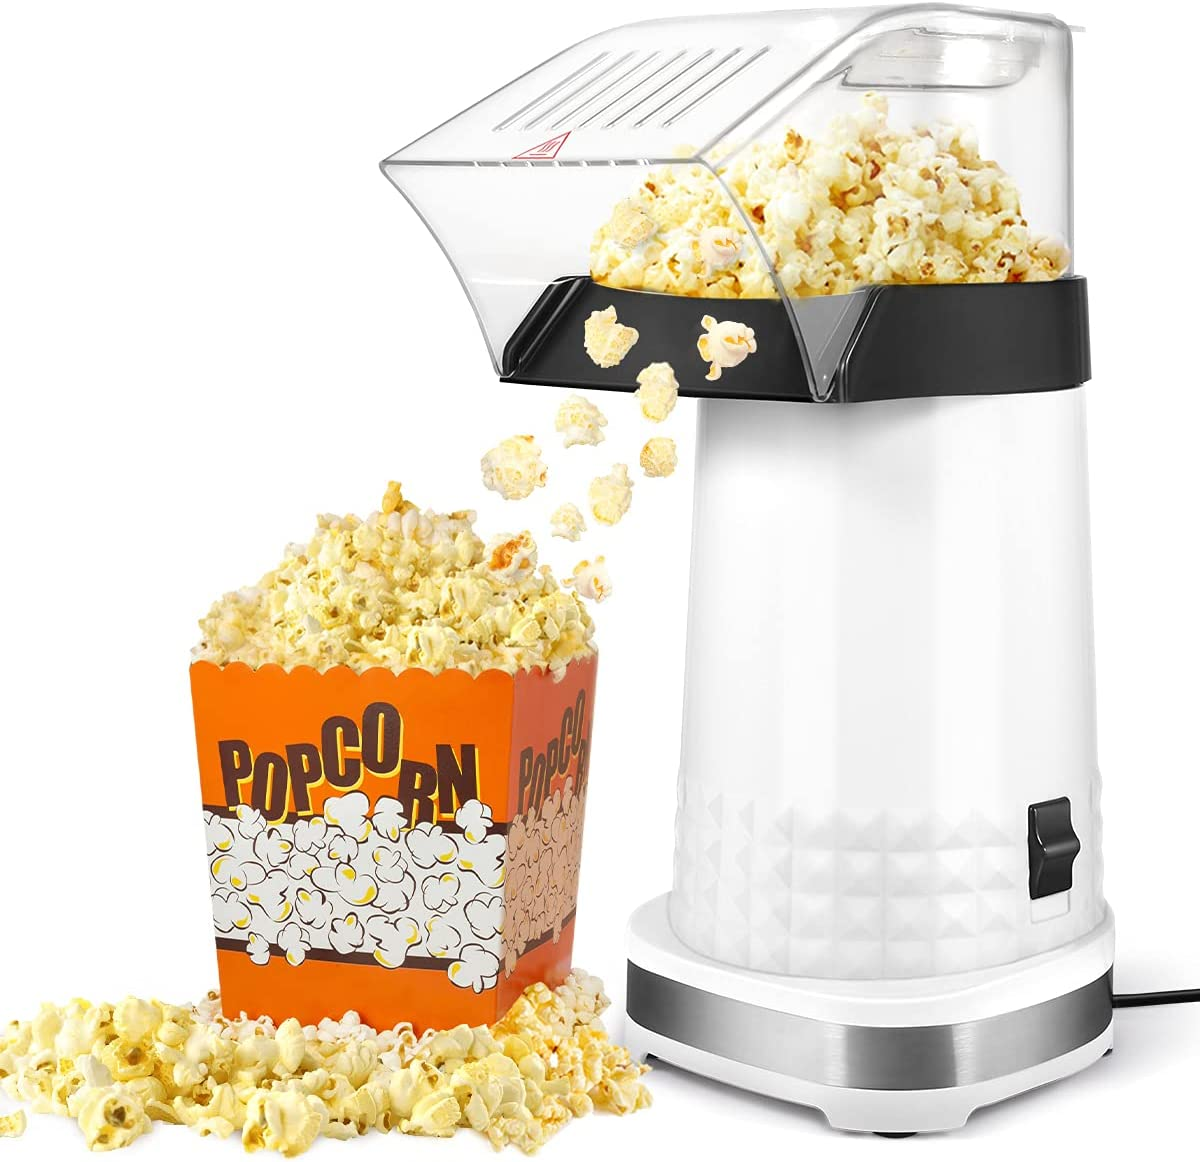 KodaQo Hot Air Popcorn Machine, Electric Popcorn Maker for Home, No Oil Needed Popcorn Popper with Measuring Cup, Healthy and Quick Snack, Perfect for Party Birthday Gift (White)